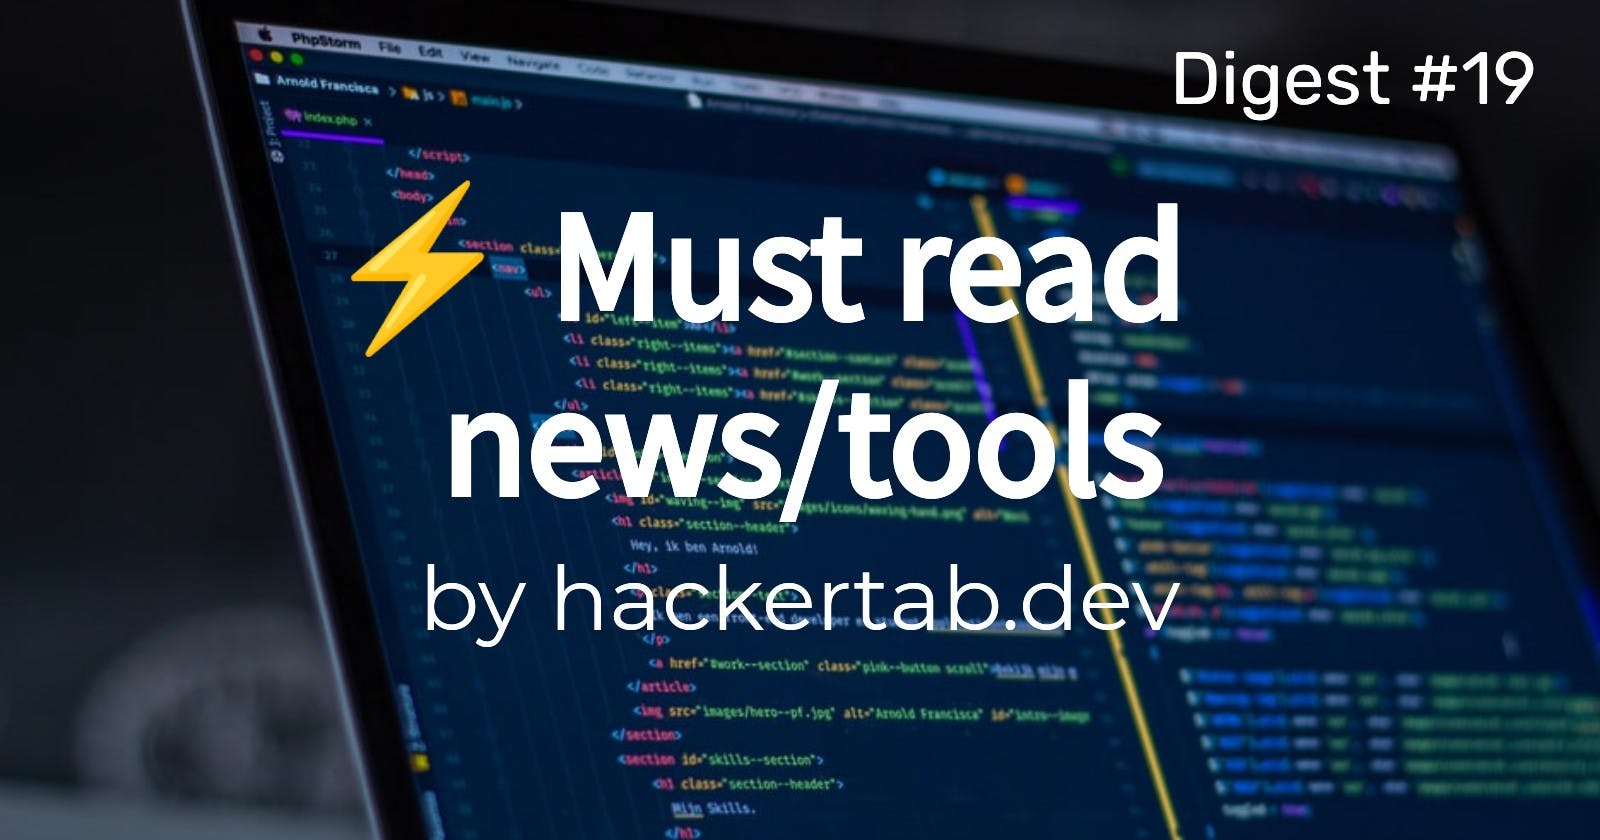 ⚡ Must read Tech news/tools of the day - Digest #19